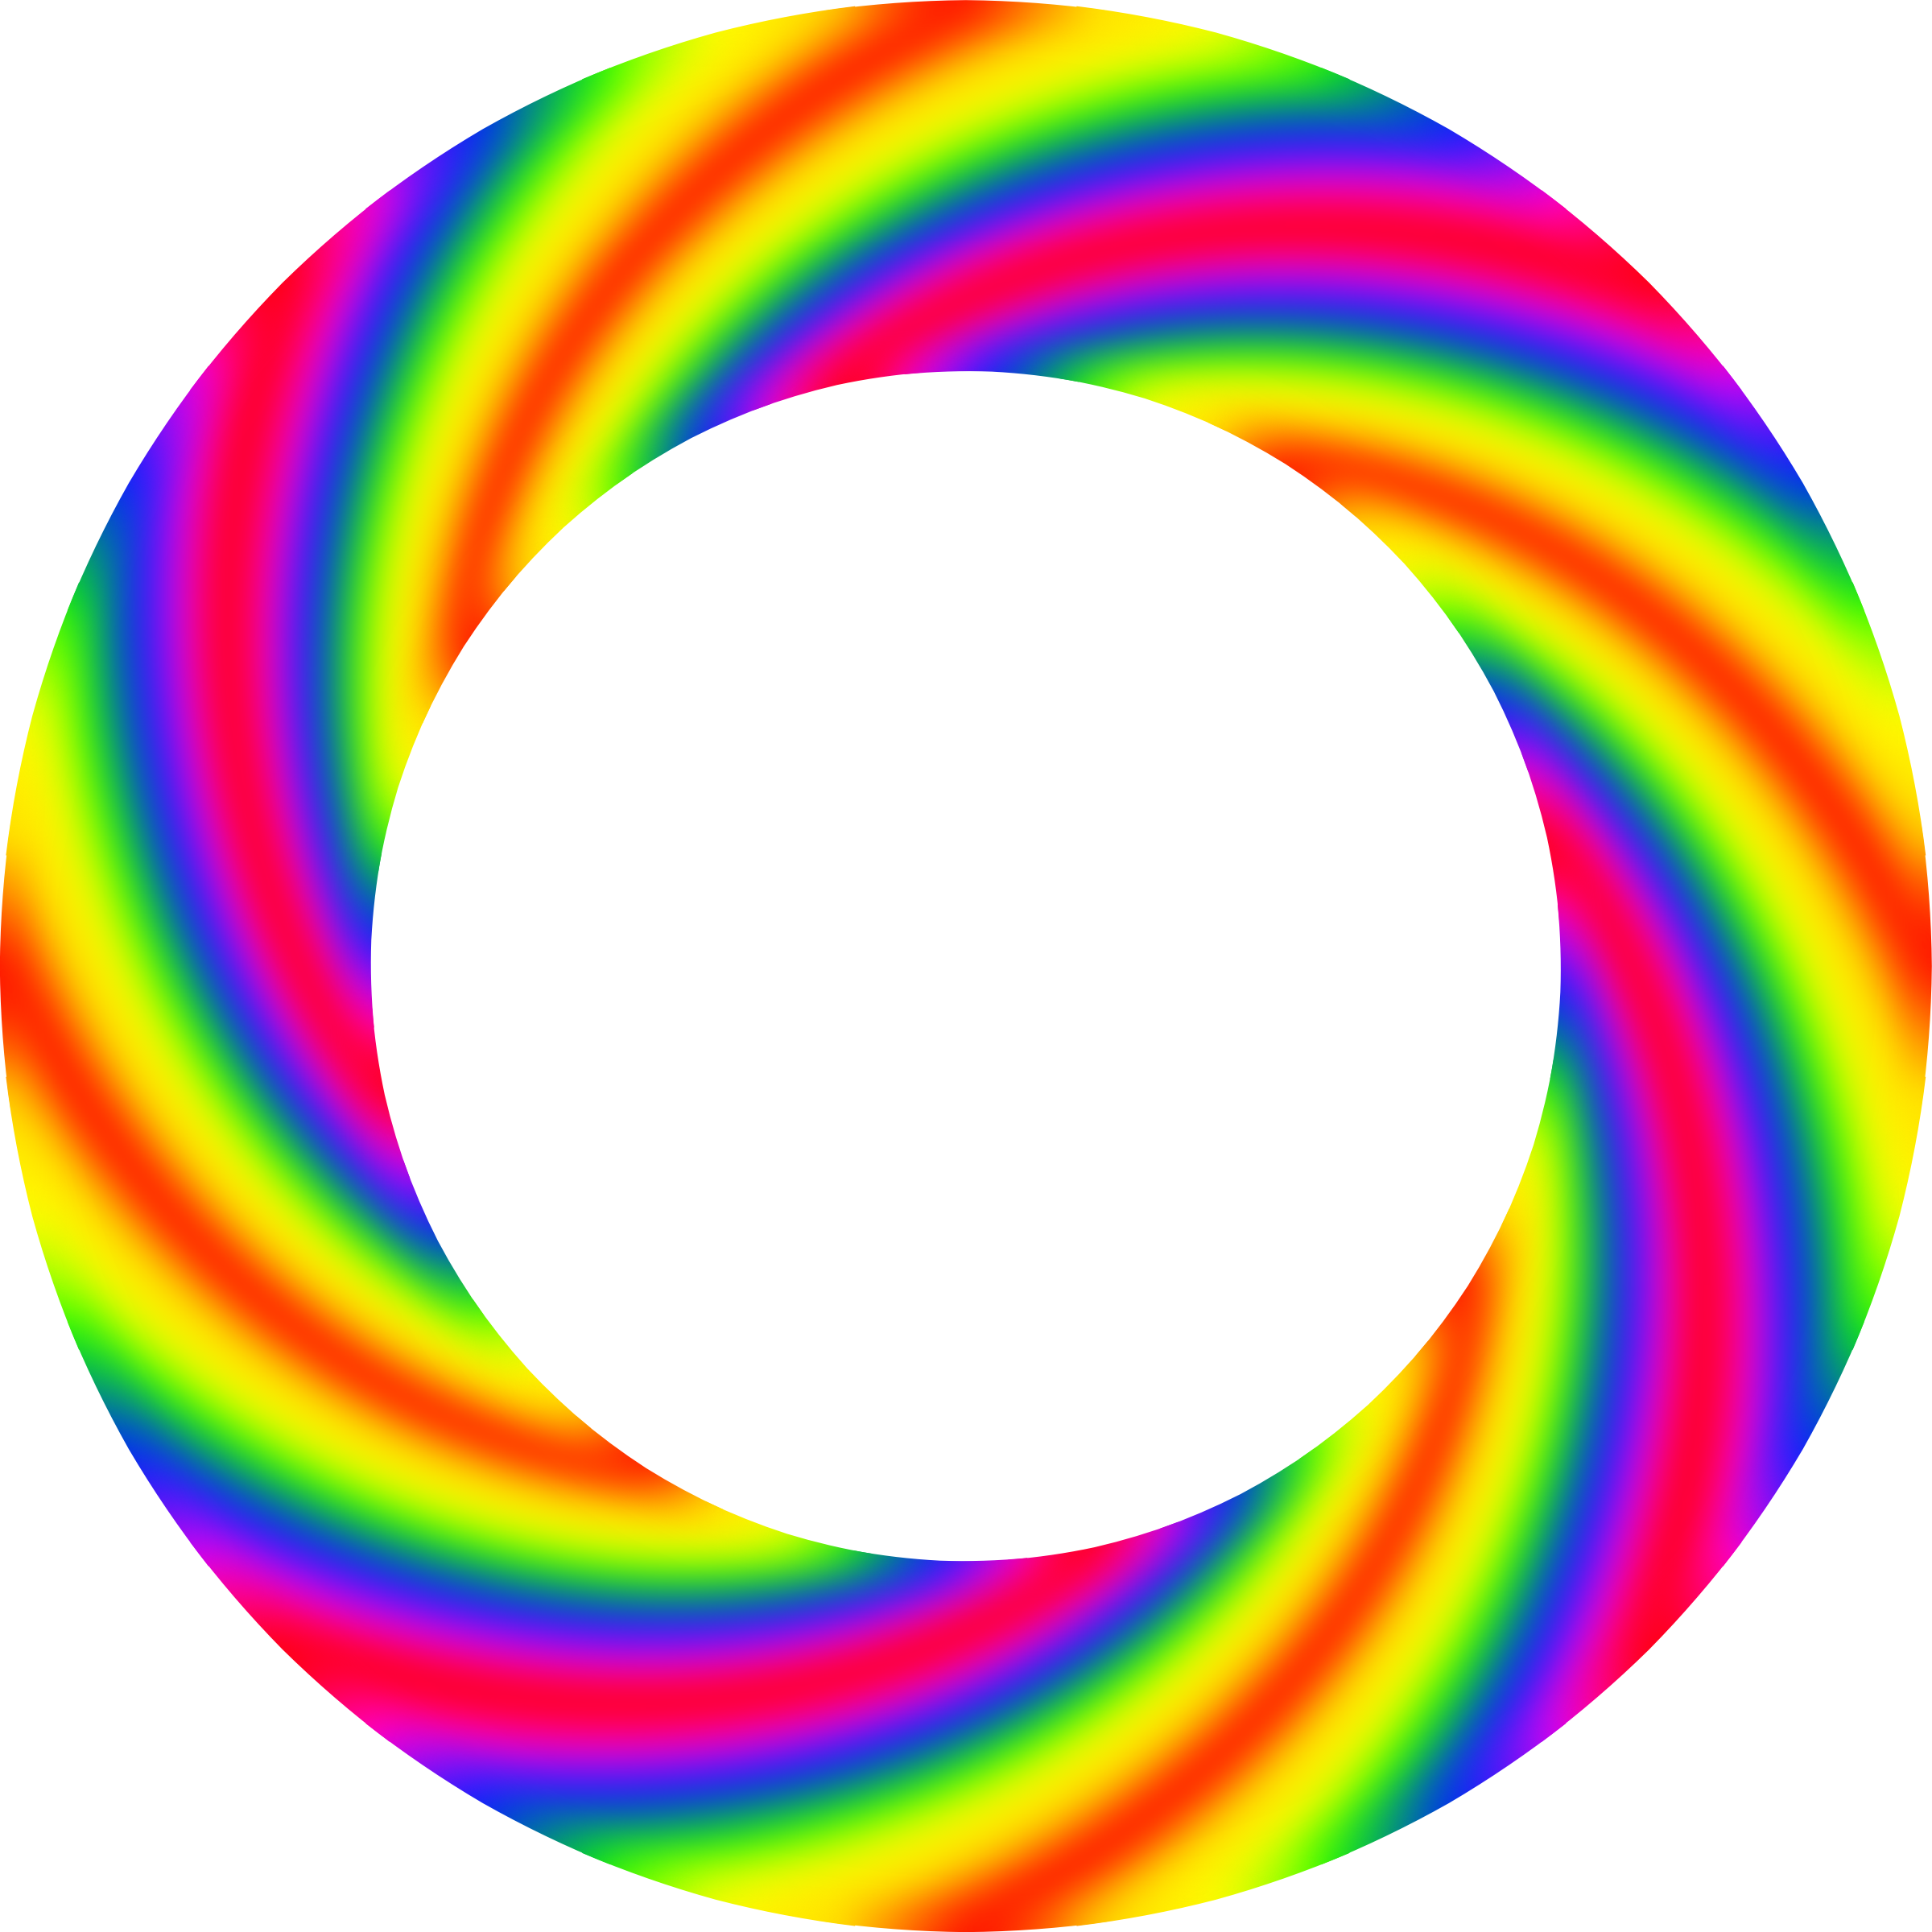 Colourful circle 2 by Firkin